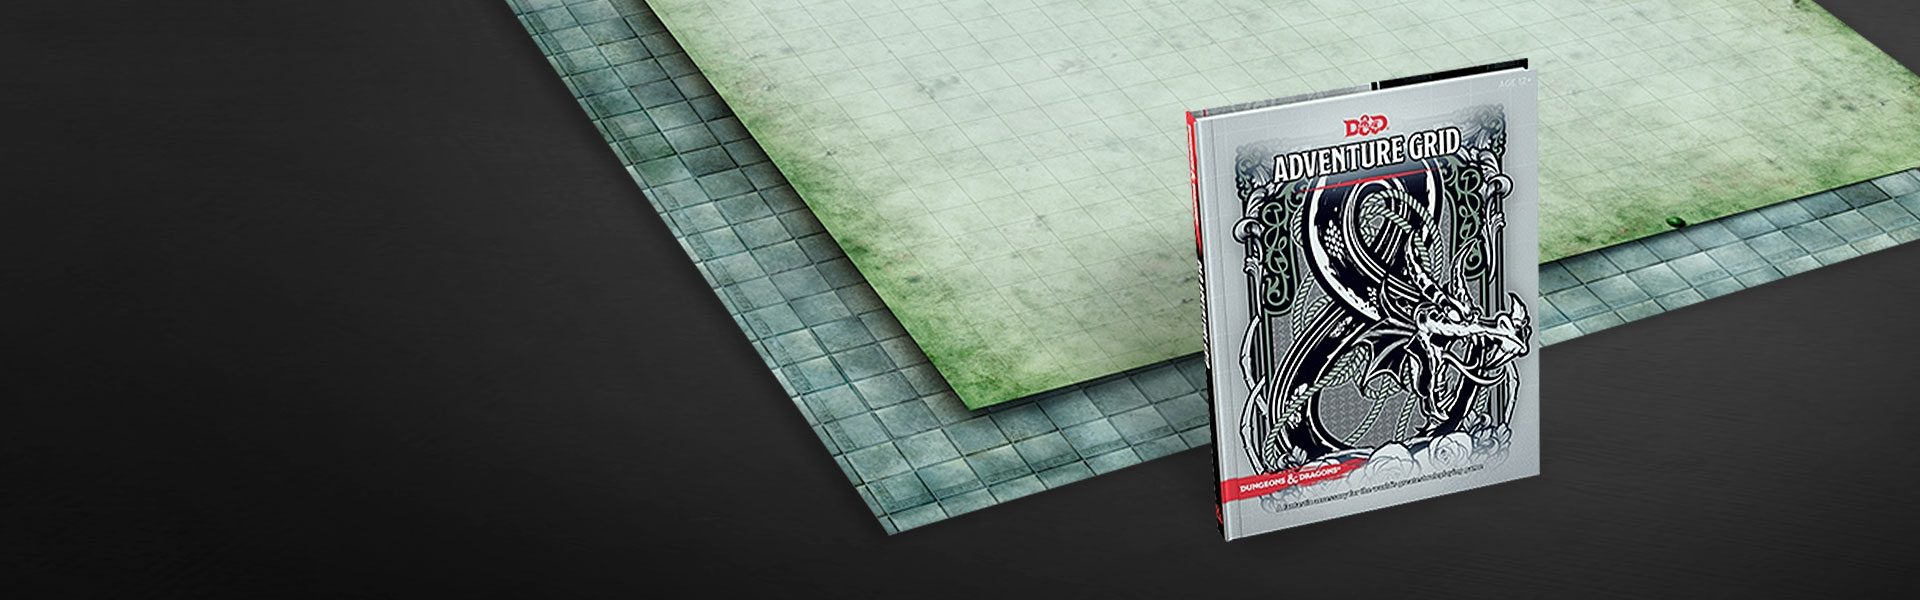 photo regarding Printable Dnd Grid named DD Experience Grid Dungeons Dragons